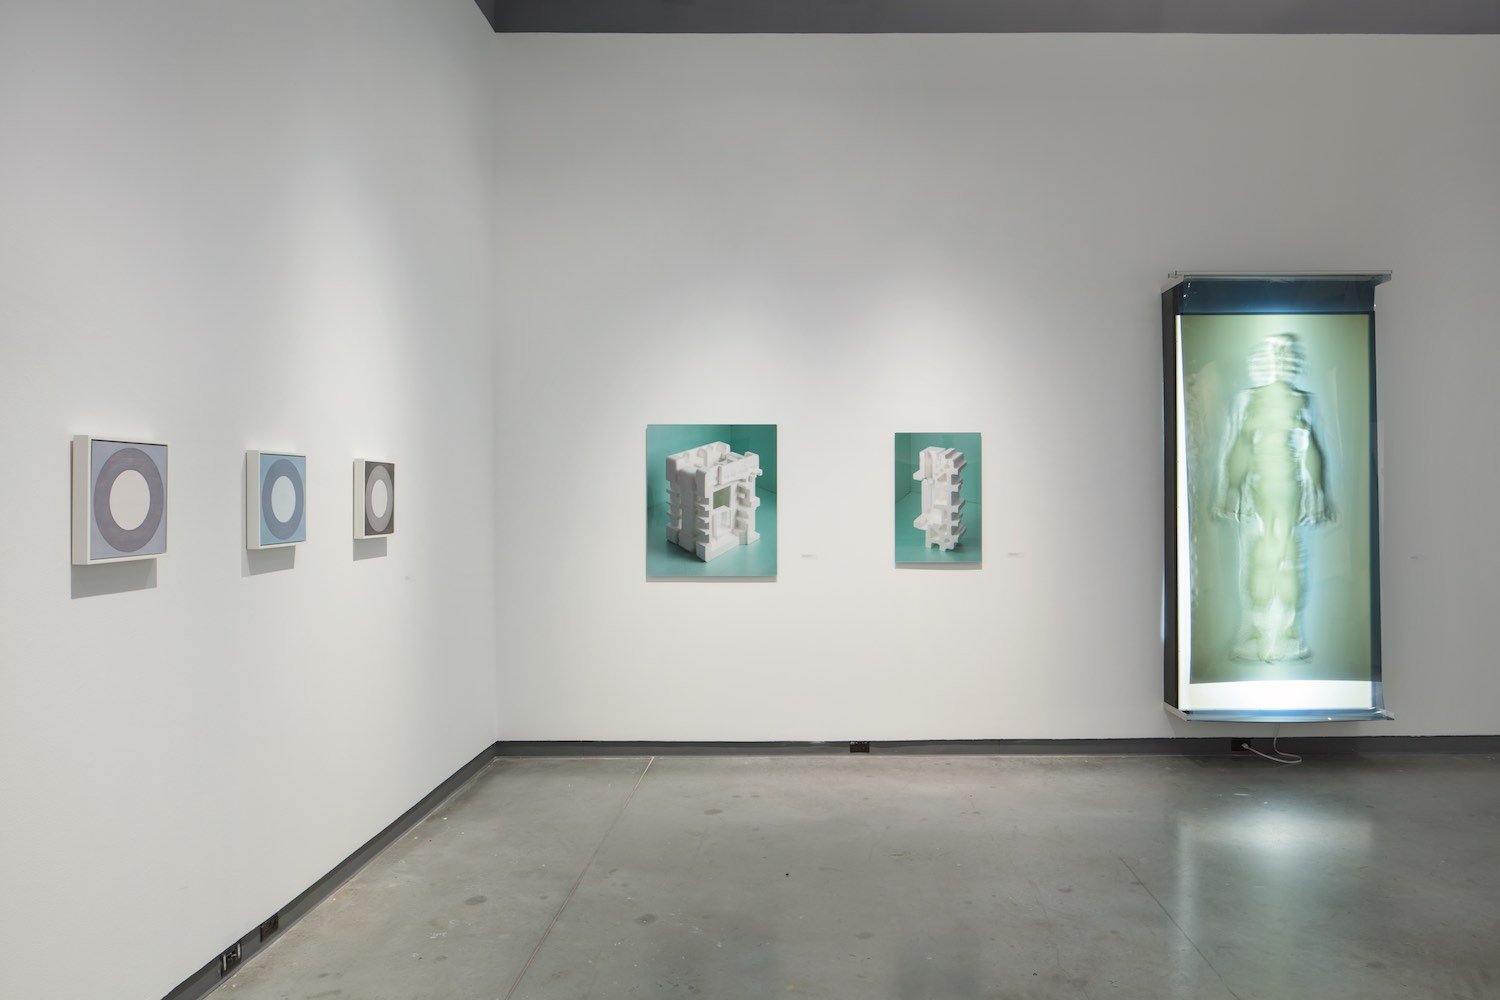 State of mInd: from left to right, Haeley Kyong, my collaborative works with Don Bethman and Carson Zullinger